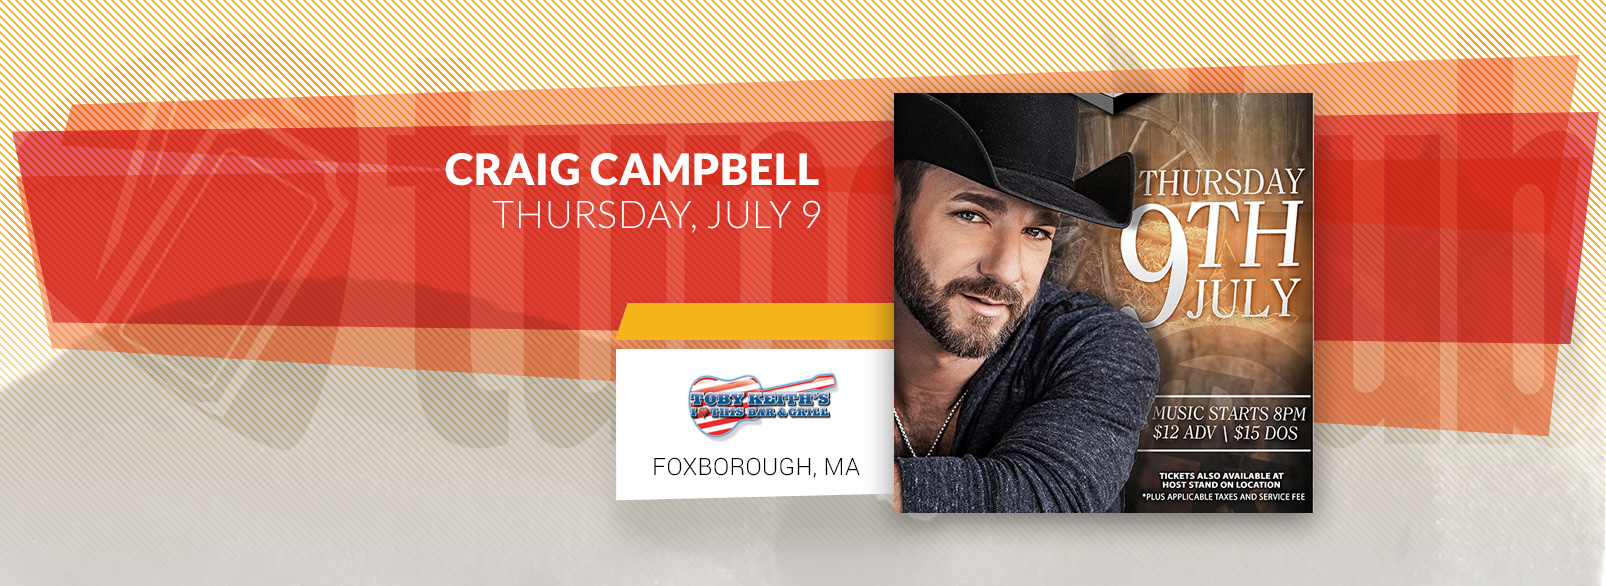 Craig Cambell @ Toby Keith's Foxborough